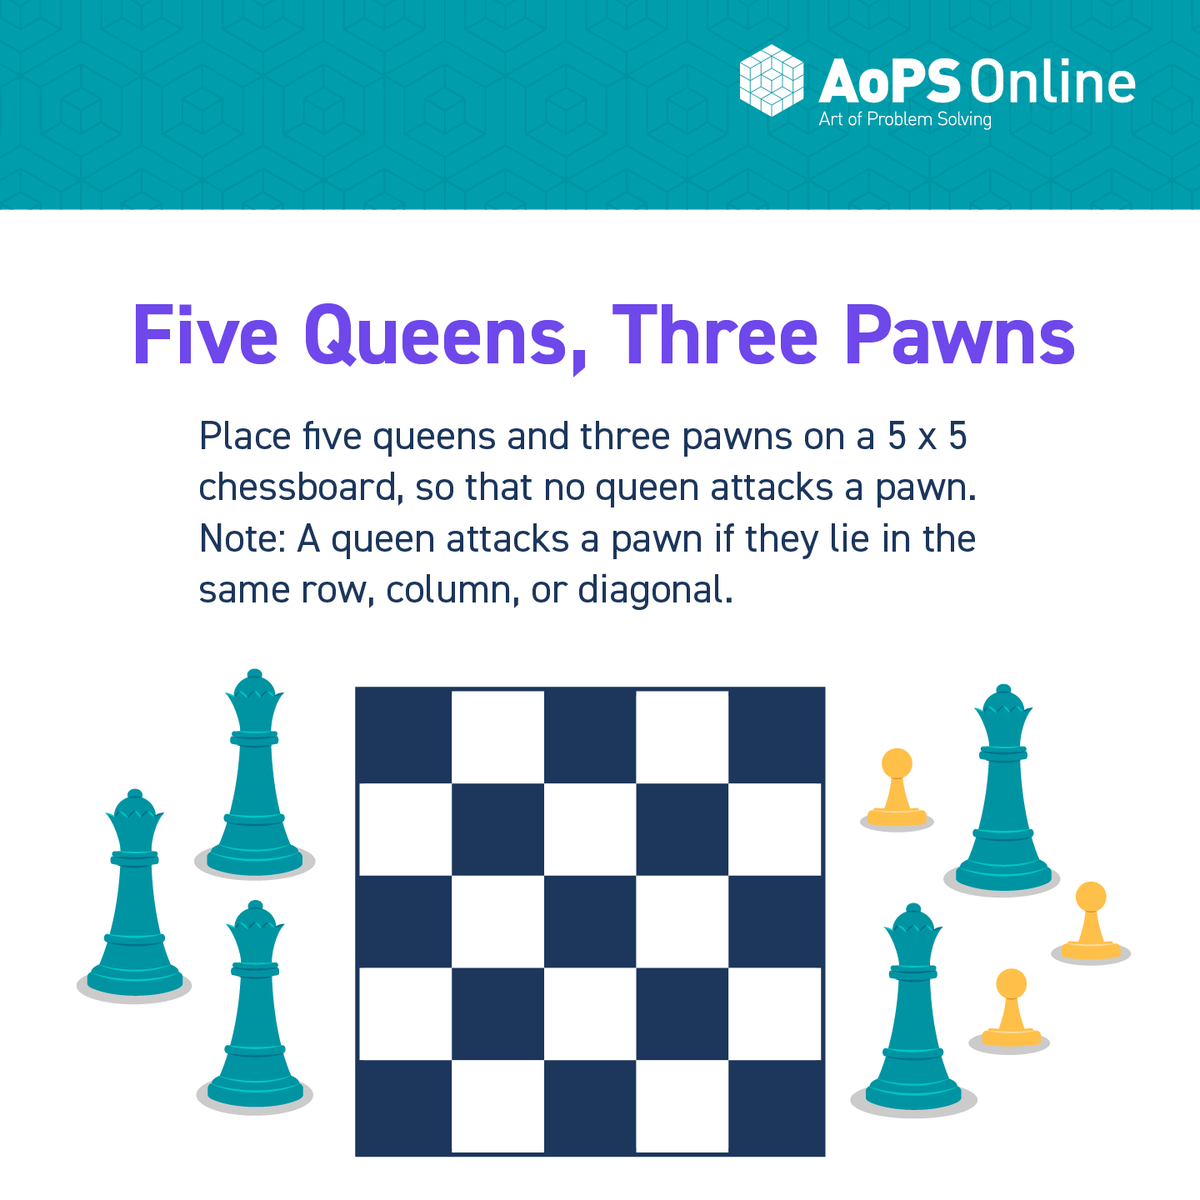 Place five queens and three pawns on a 5 x 5 chessboard, so that no queen attacks a pawn. Note: A queen attacks a pawn if they lie in the same row, column, or diagonal.  For more resources, check out https://t.co/K4fWia3b9k https://t.co/9zRnsF9BoI